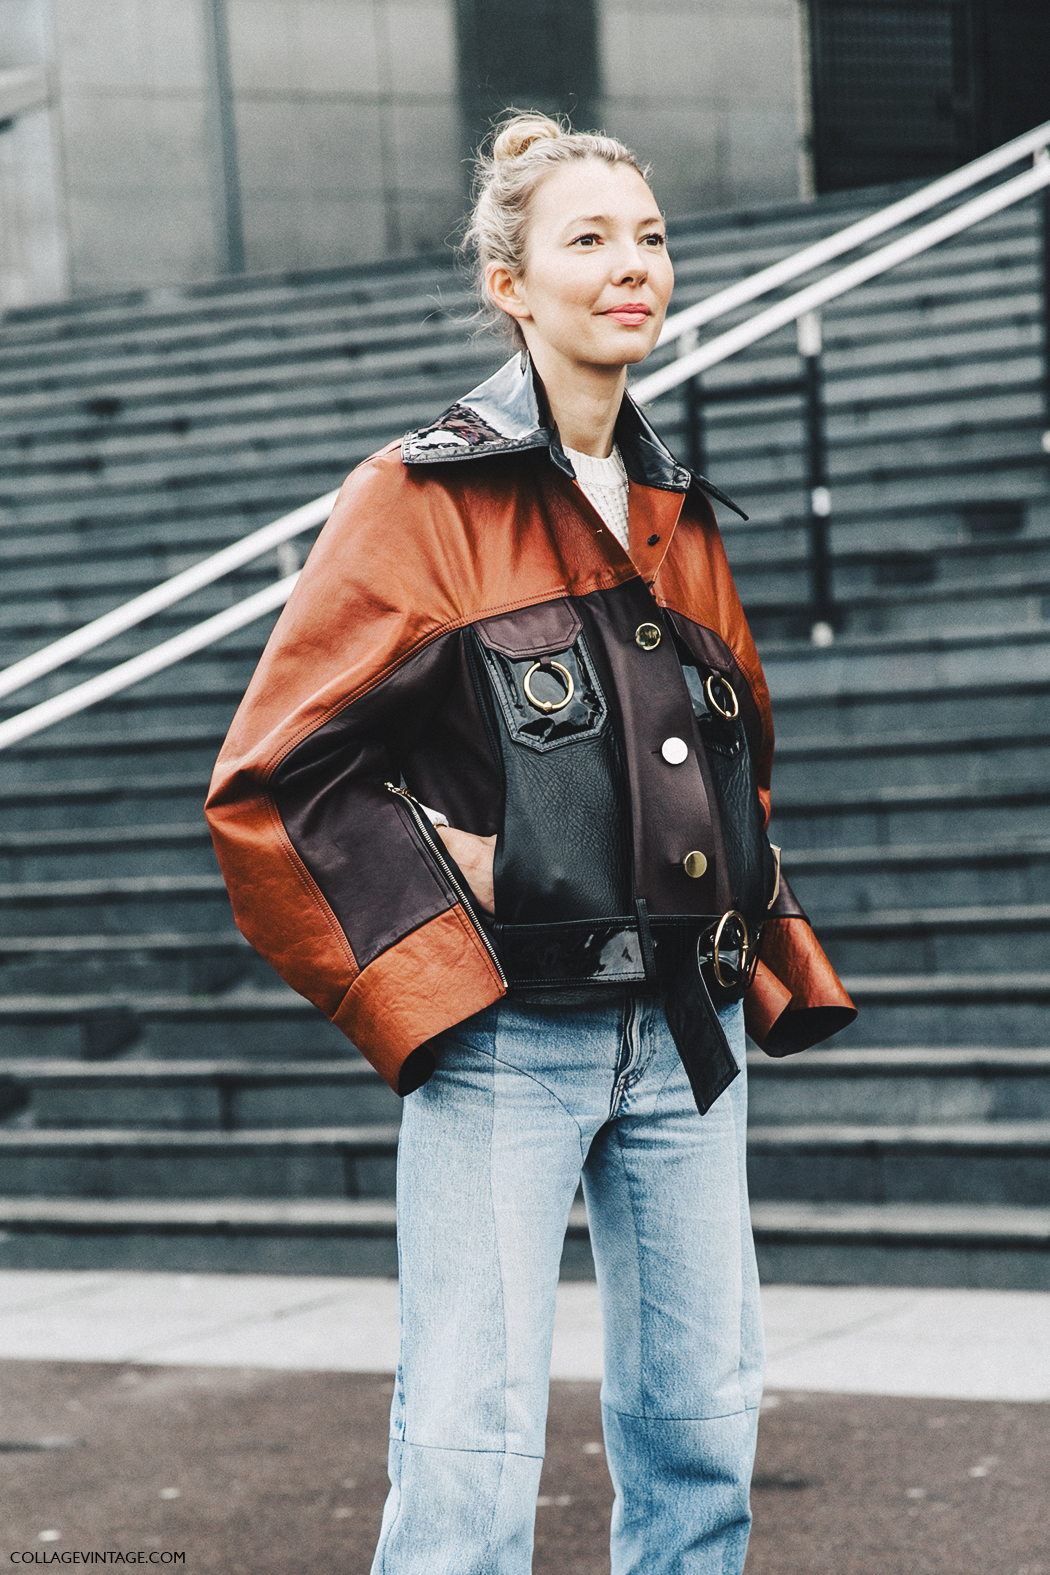 PFW-Paris_Fashion_Week_Fall_2016-Street_Style-Collage_Vintage-Vetements_Jeans-Celine_Boots-Leather_Jacket-6